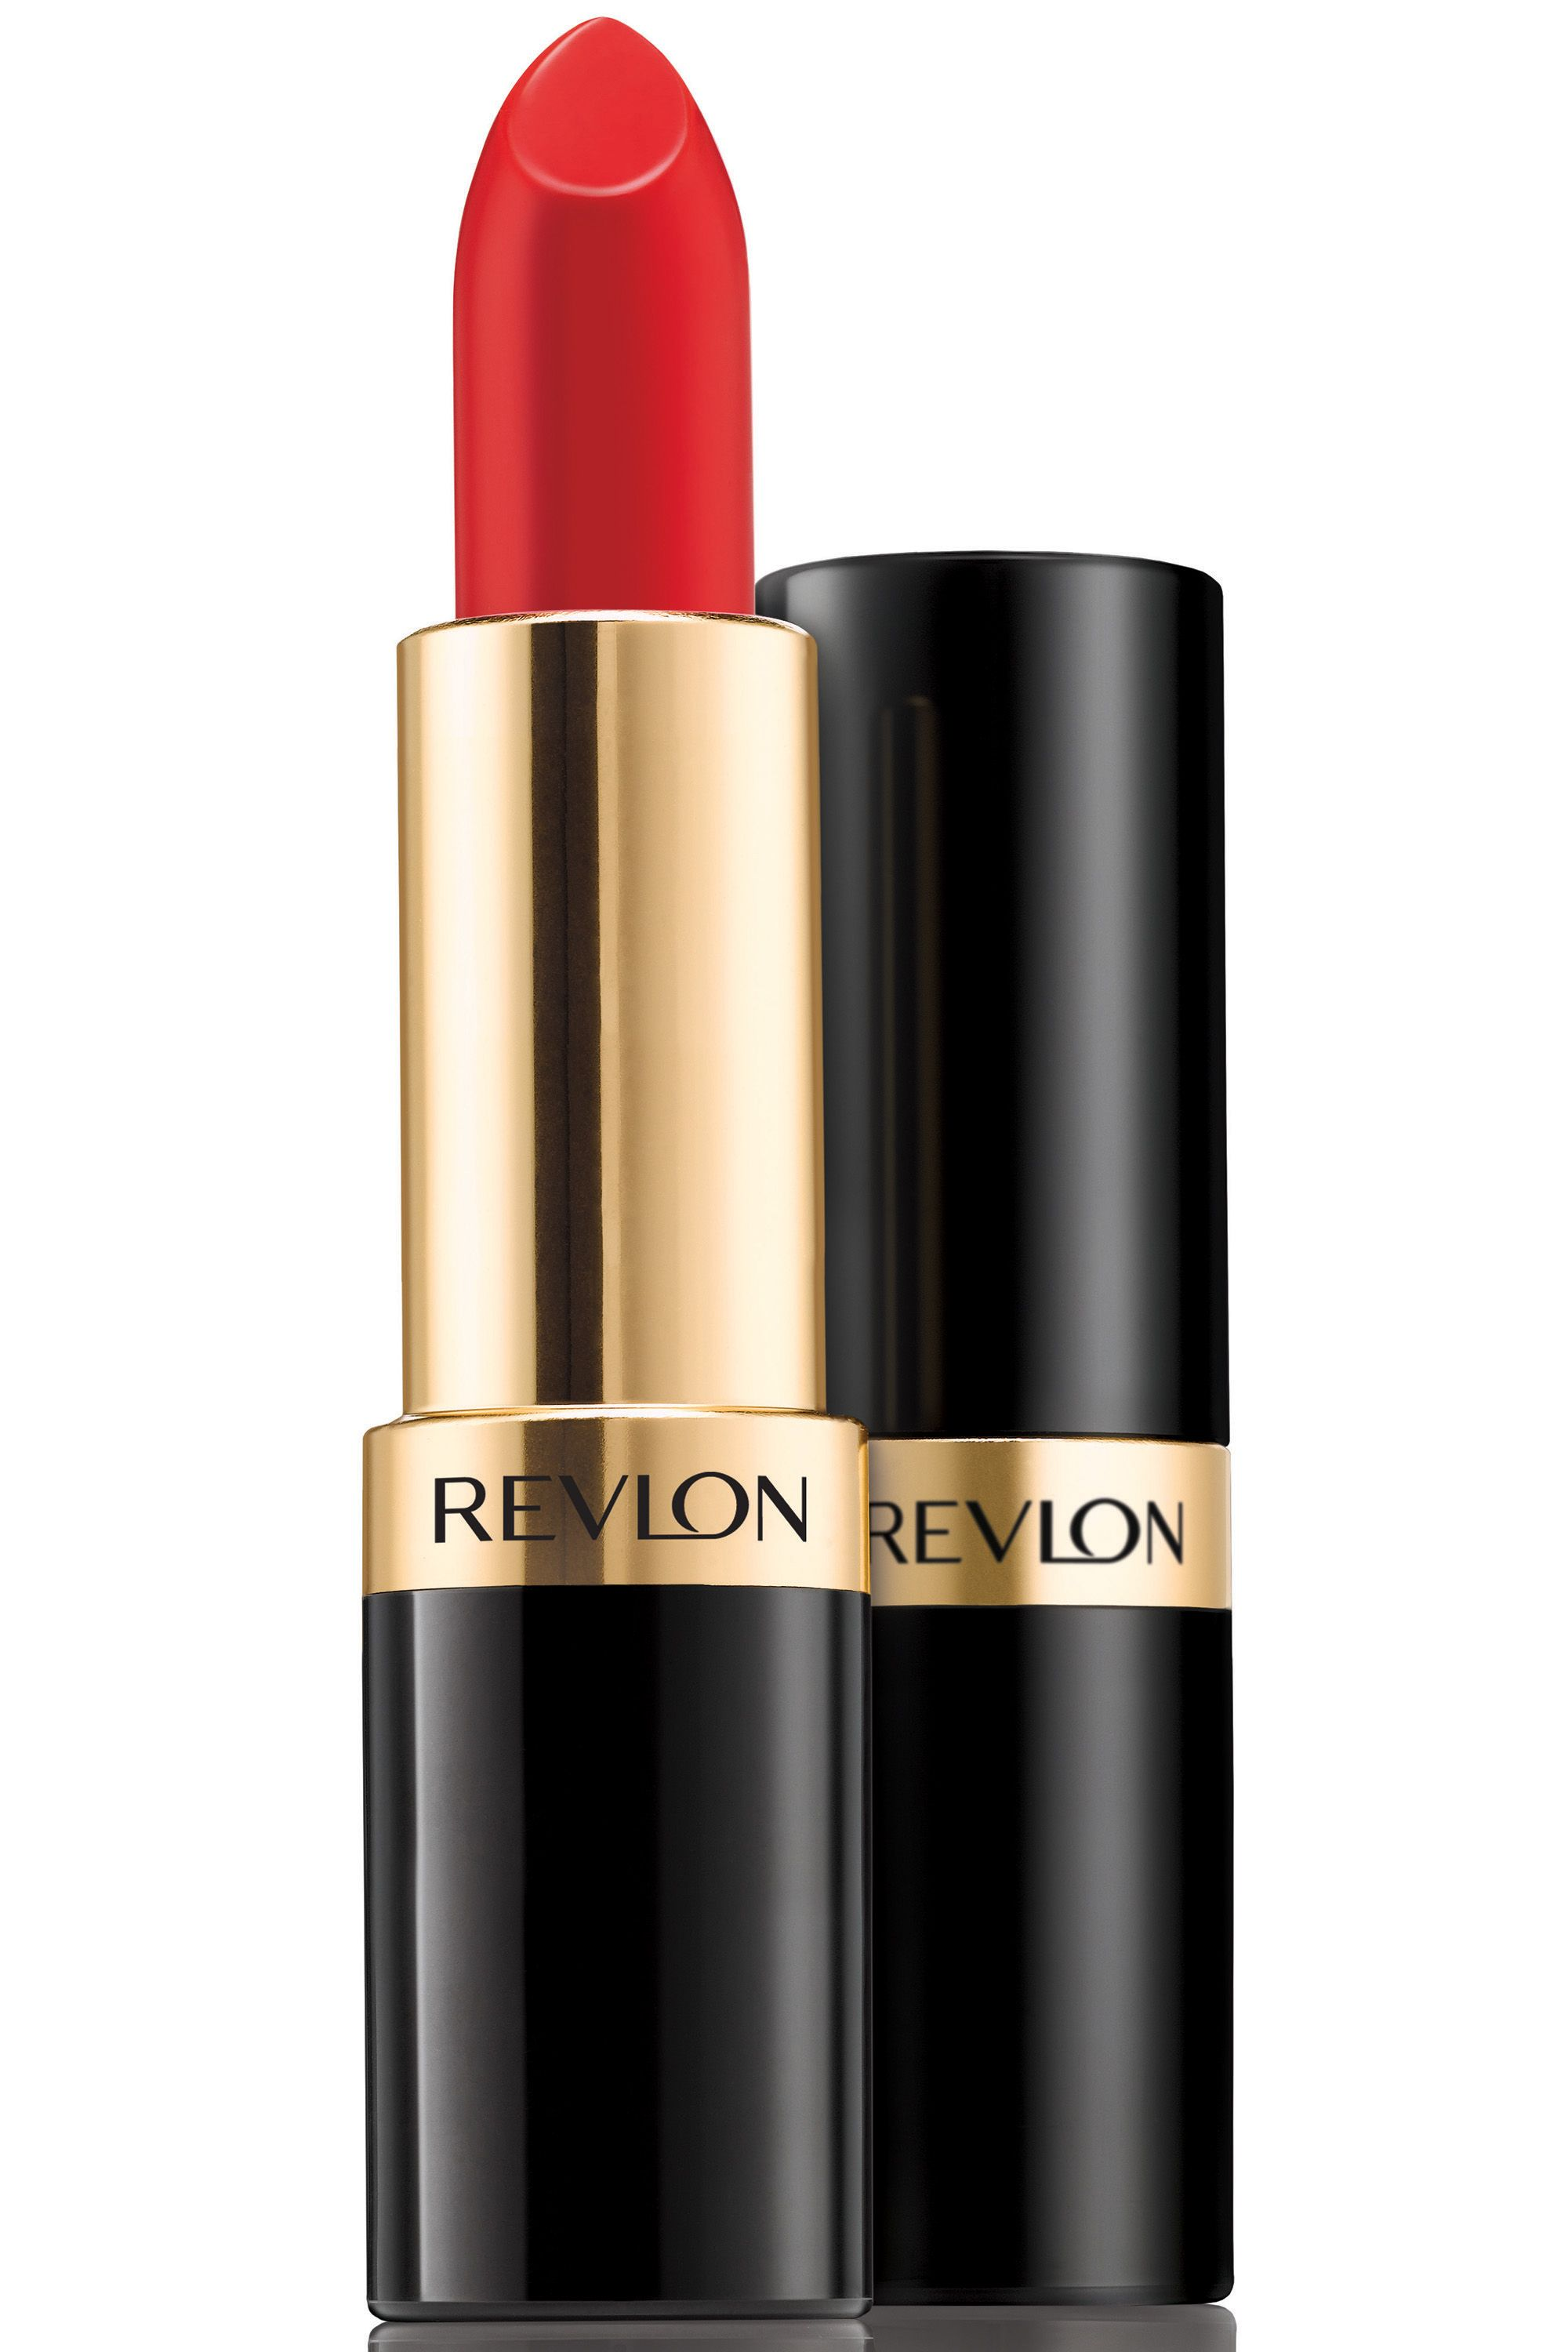 """<p>This glamorous Hollywood red has been the top-seller since the 1950s.</p><p><strong>Revlon</strong> Super Lustrous Lipstick in Fire & Ice, $6, <a href=""""http://www.drugstore.com/revlon-super-lustrous--creme-lipstick-fire-and-ice/qxp36032"""" target=""""_blank"""">drugstore.com</a>.</p>"""